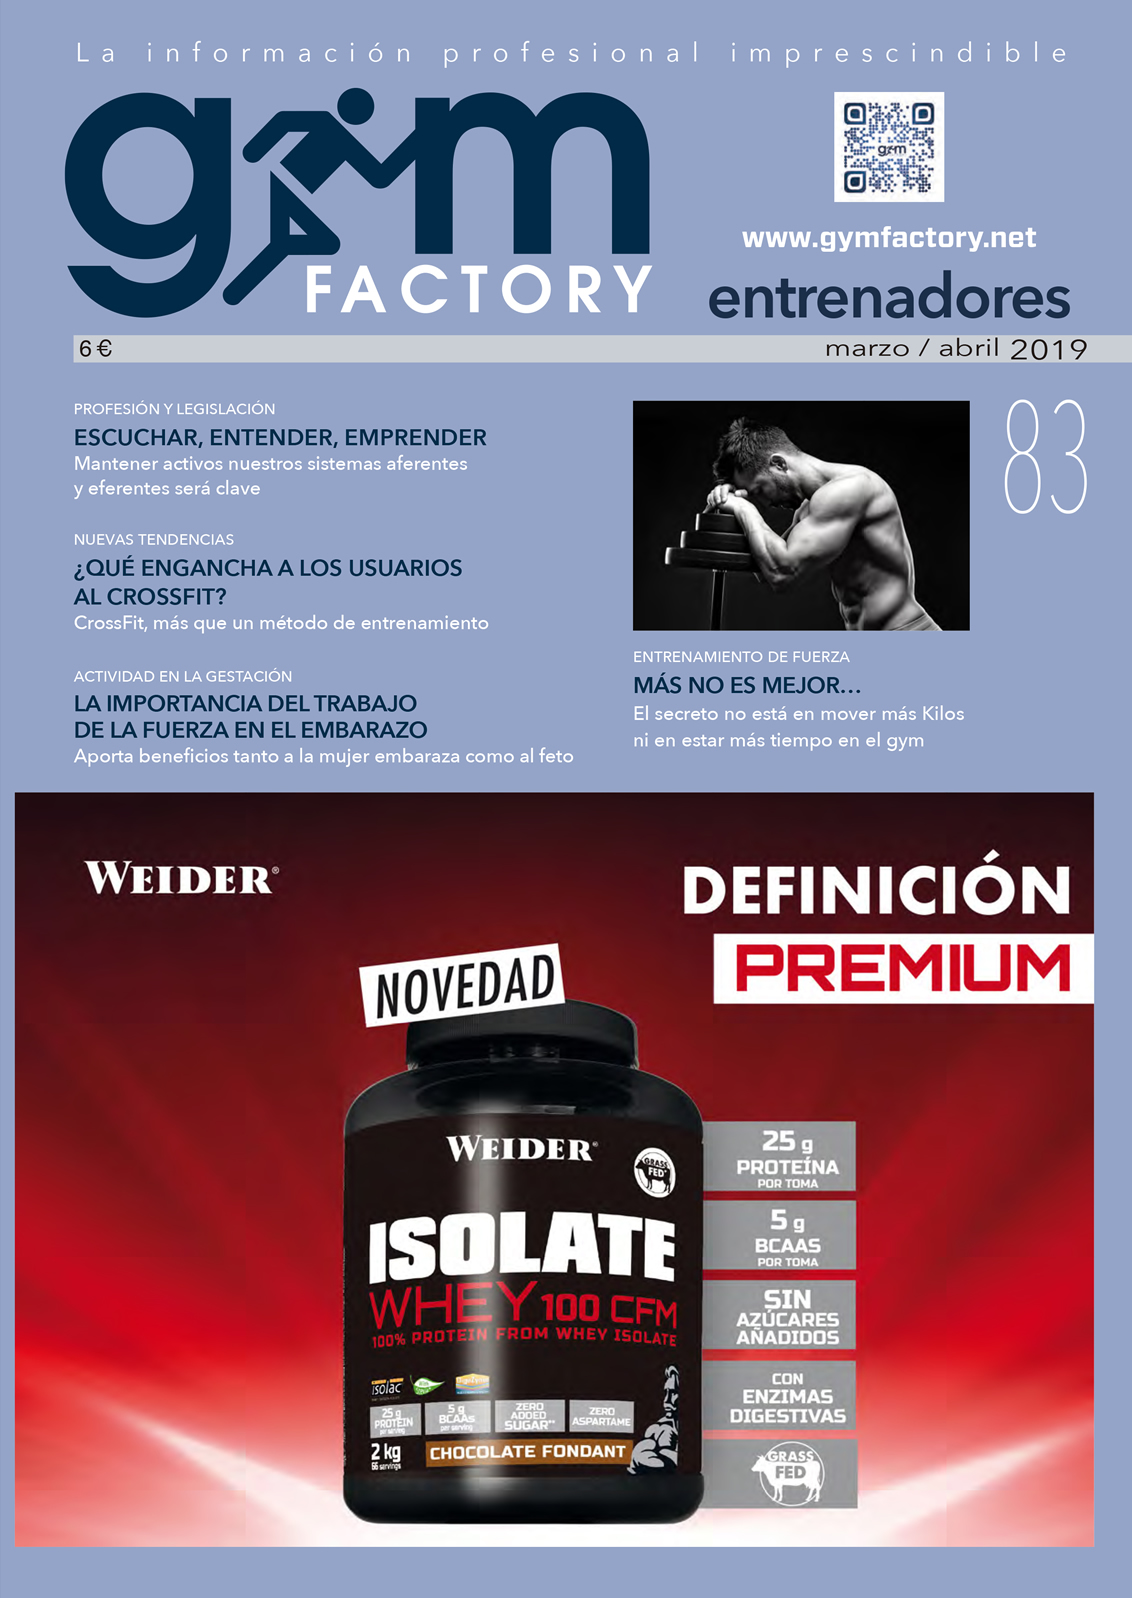 //www.gymfactory.net/wp-content/uploads/2019/03/gymfactory-entrenadores.83.jpg